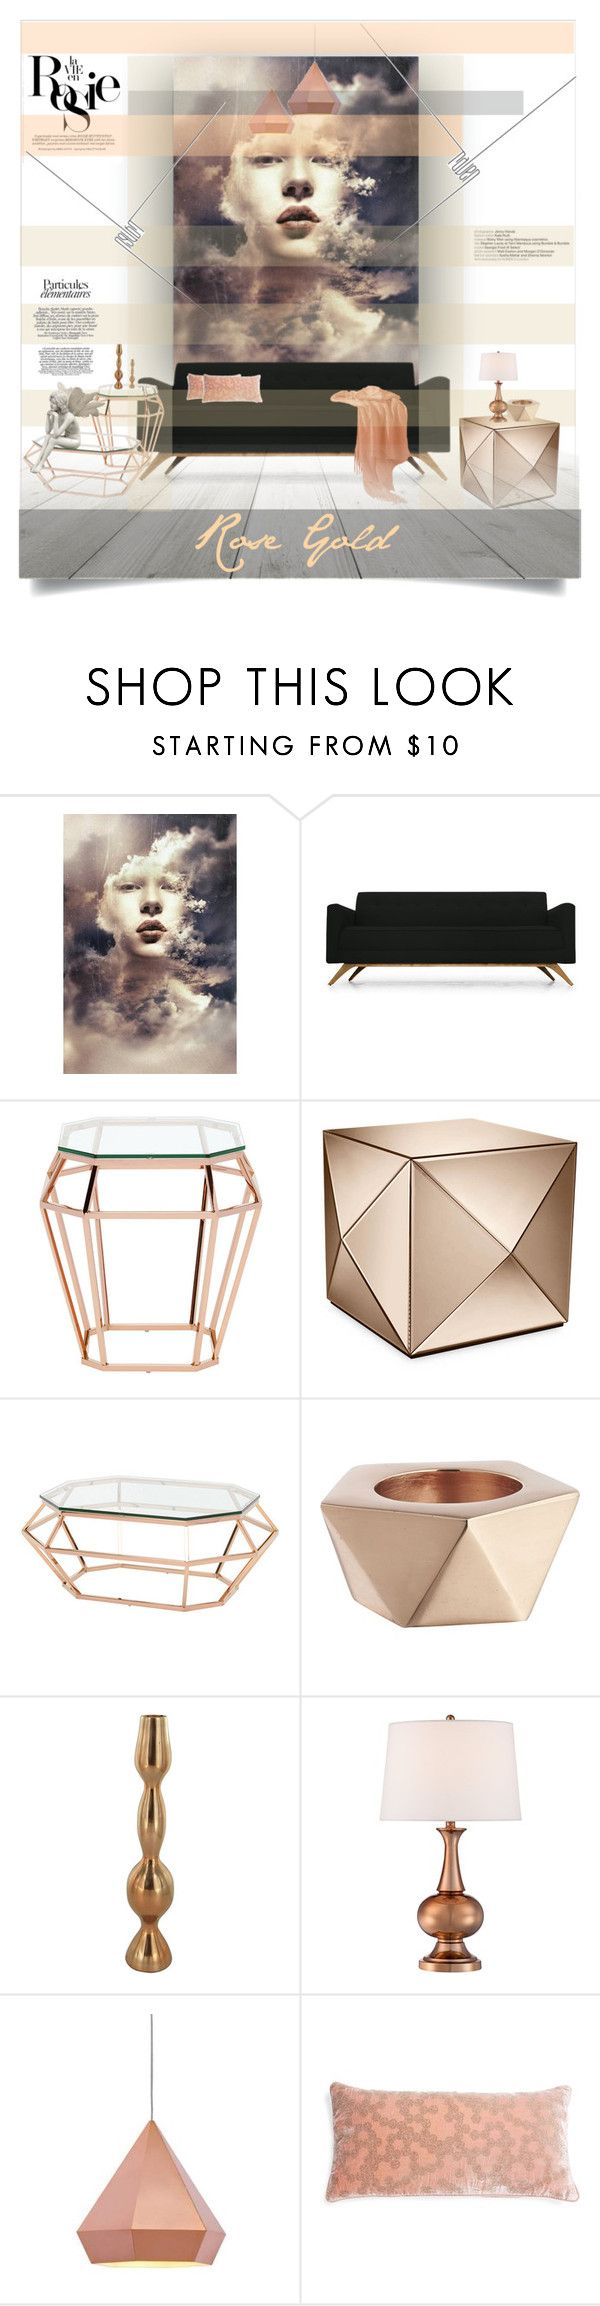 """""""Blinds"""" by lulunam on Polyvore featuring interior, interiors, interior design, home, home decor, interior decorating, Joybird Furniture, Whiteley, Nuevo and CB2"""